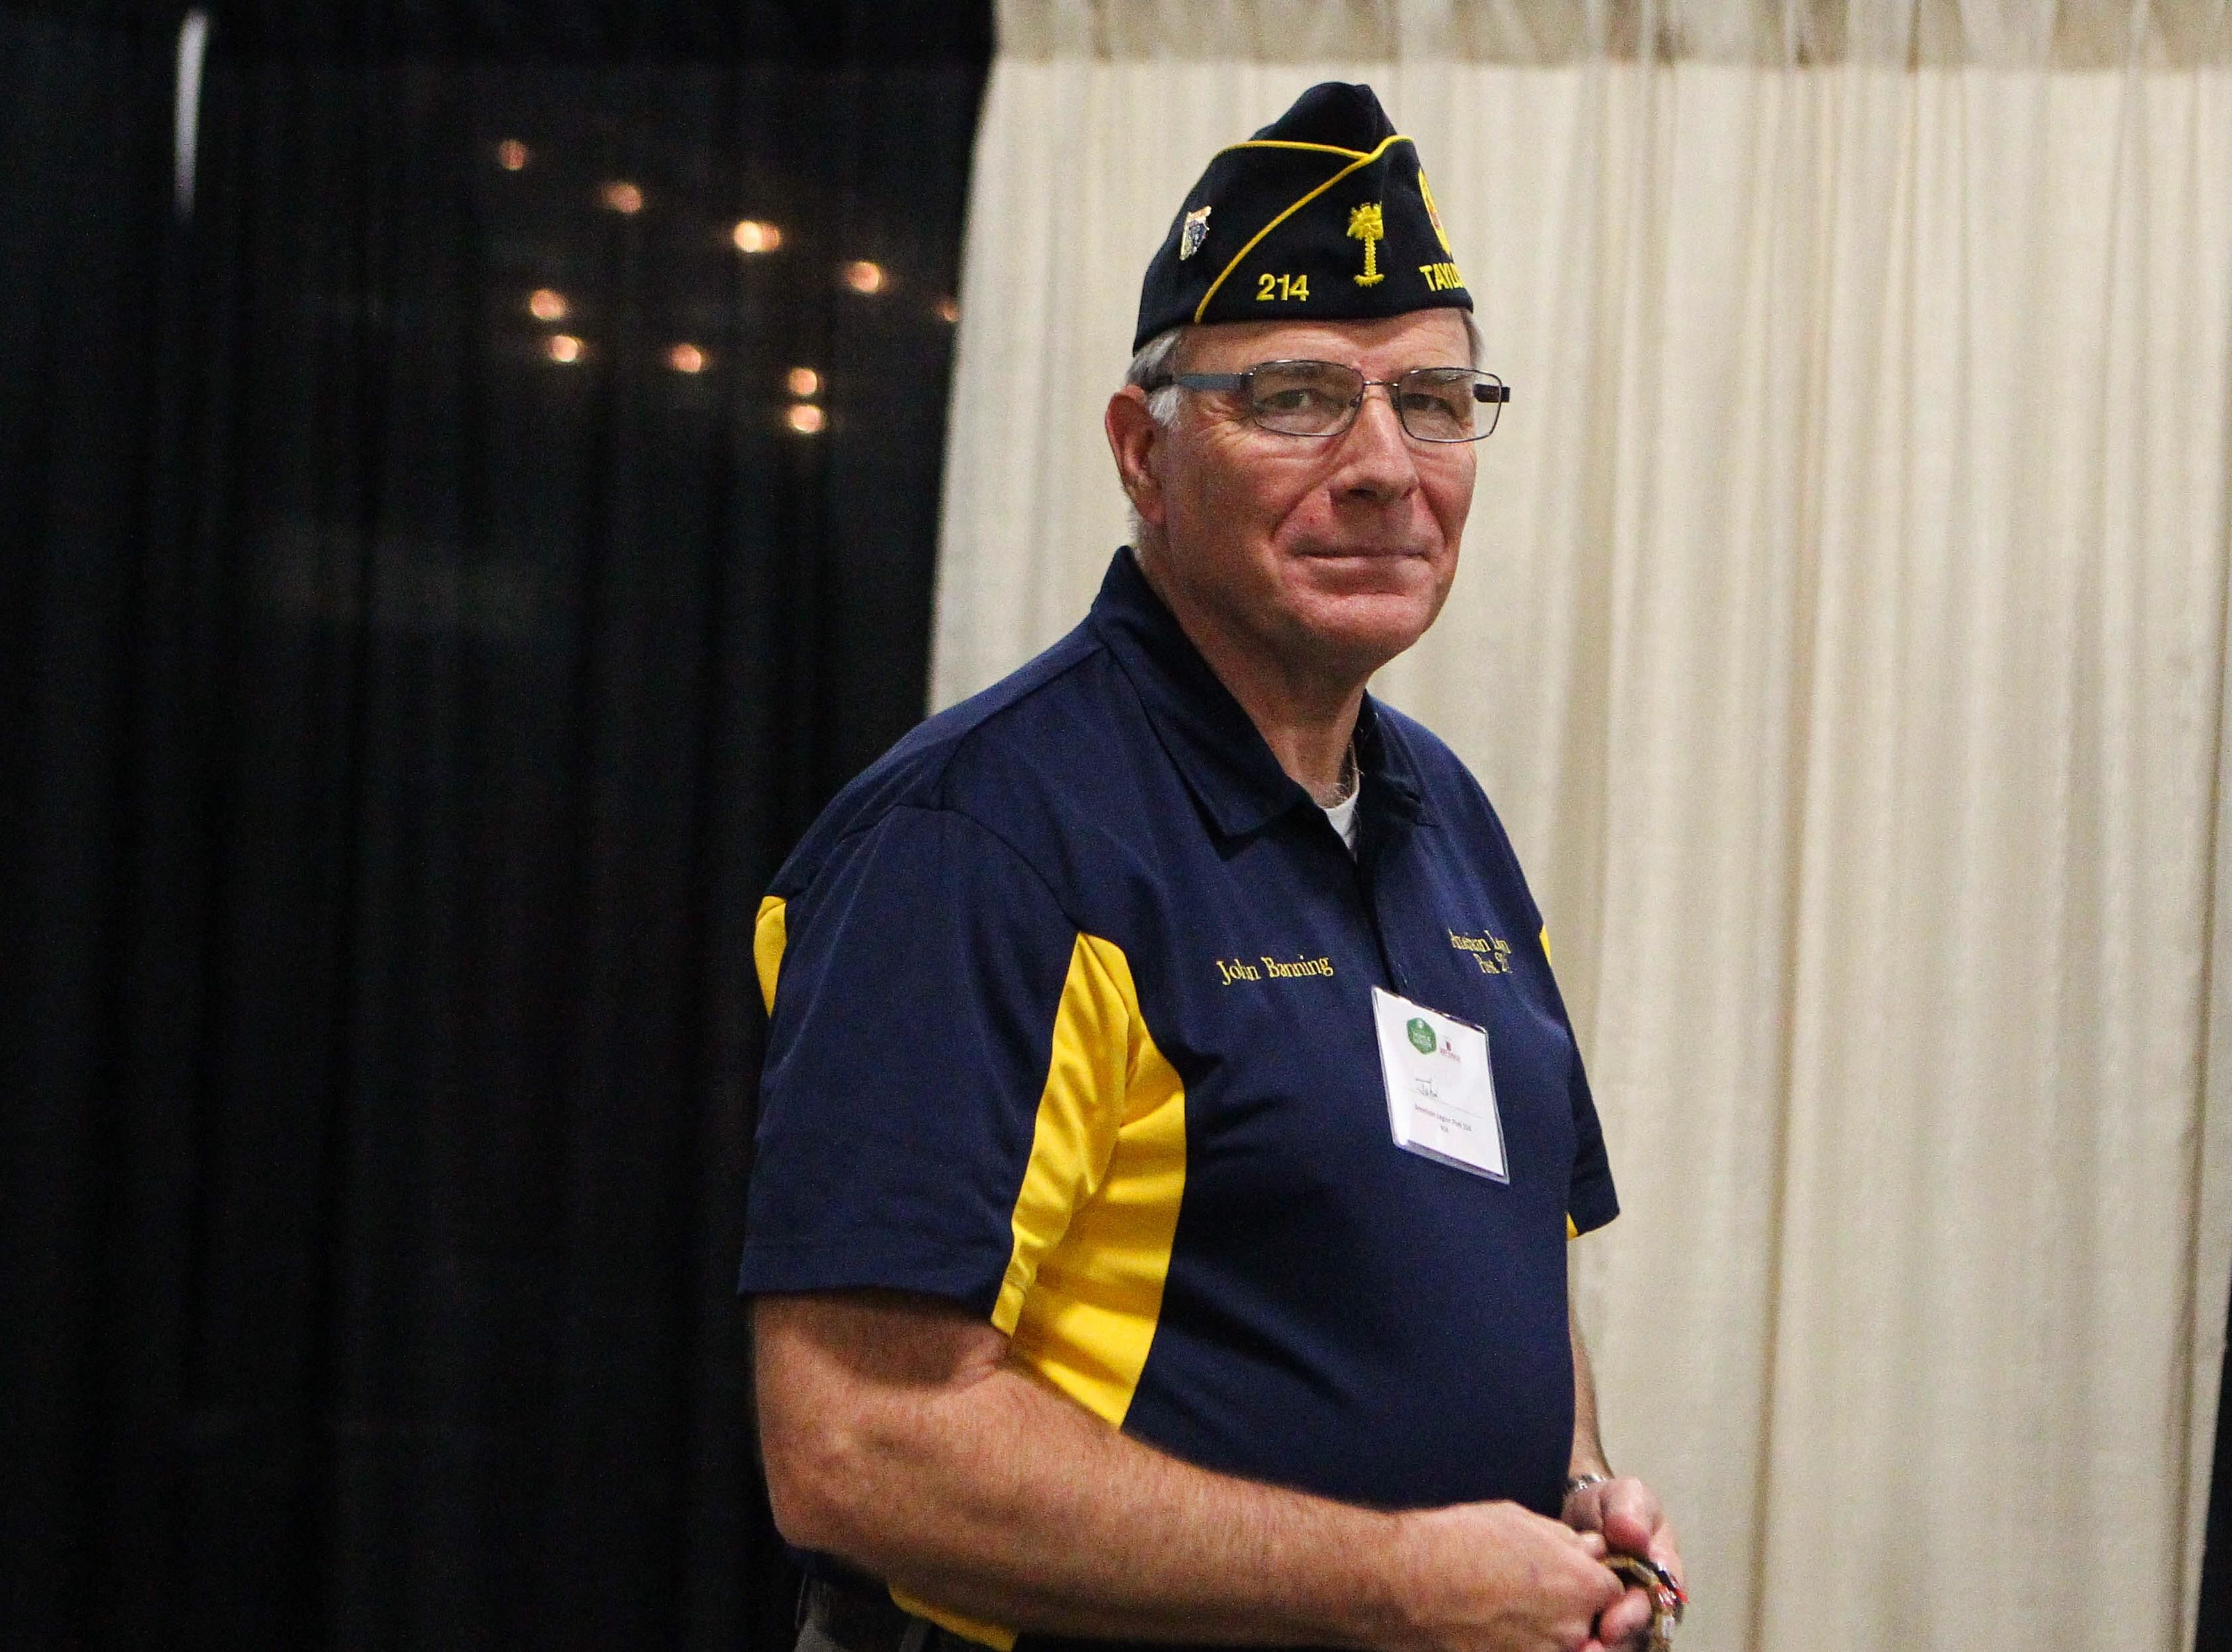 Veteran John Banning poses at his booth at the Southern Home and Garden Show at the Greenville Convention Center on Friday, March 1, 2019.